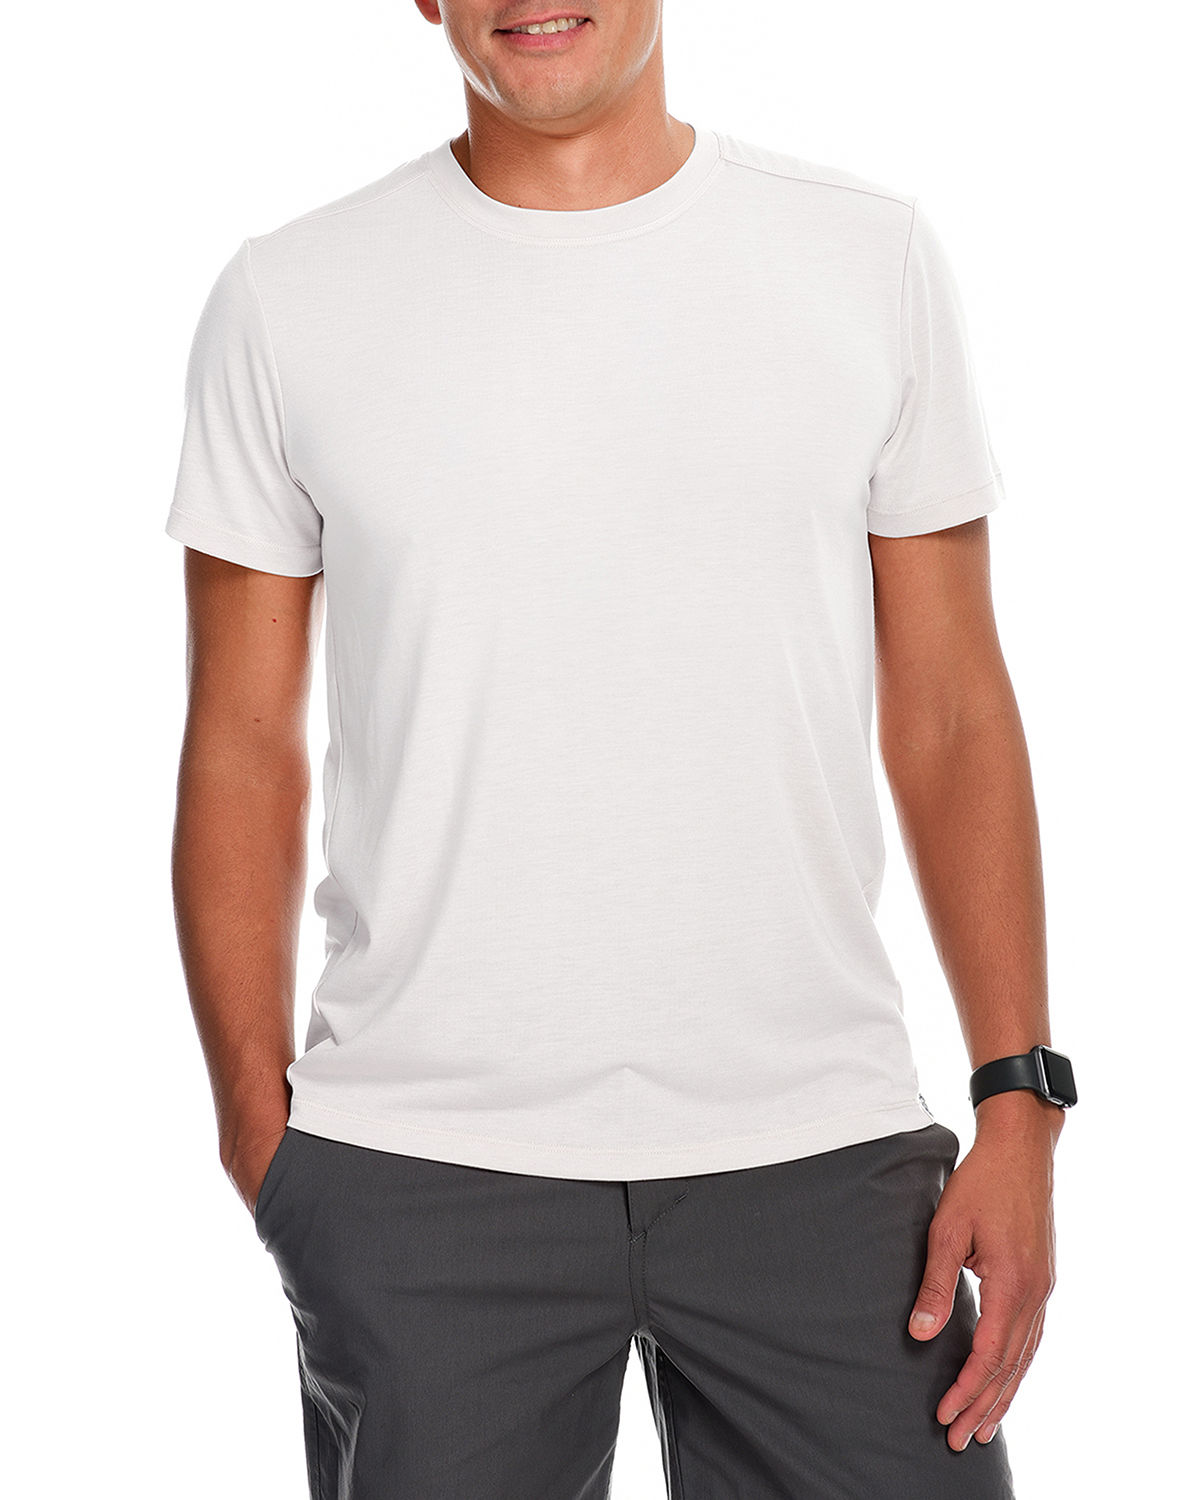 Men's Mission Solid Performance T-Shirt